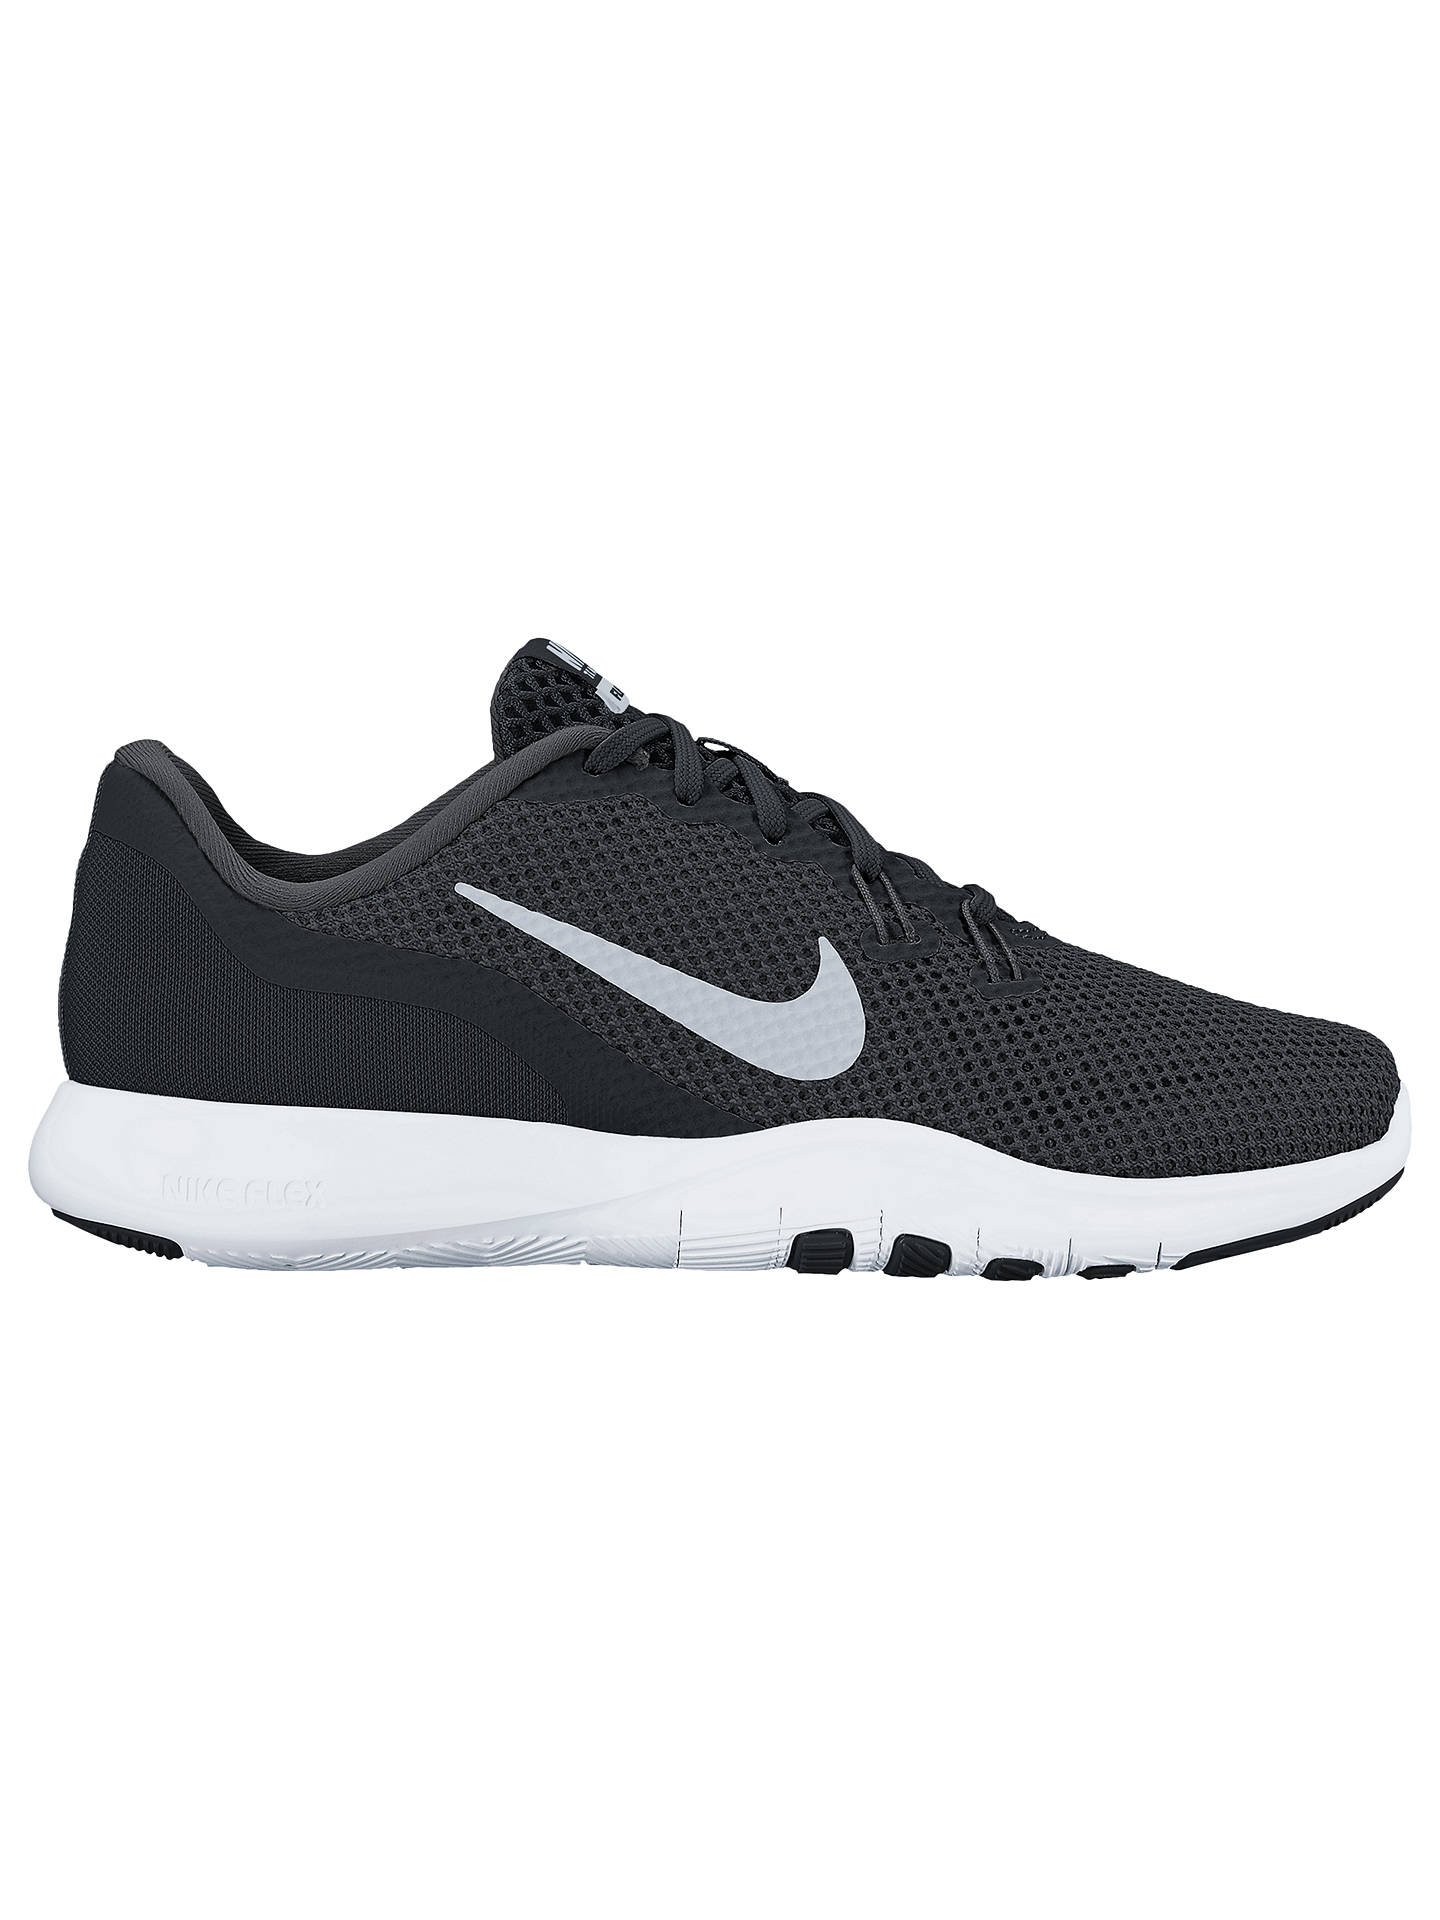 faab5fa1039a Buy Nike Flex Trainer 7 Women s Training Shoe